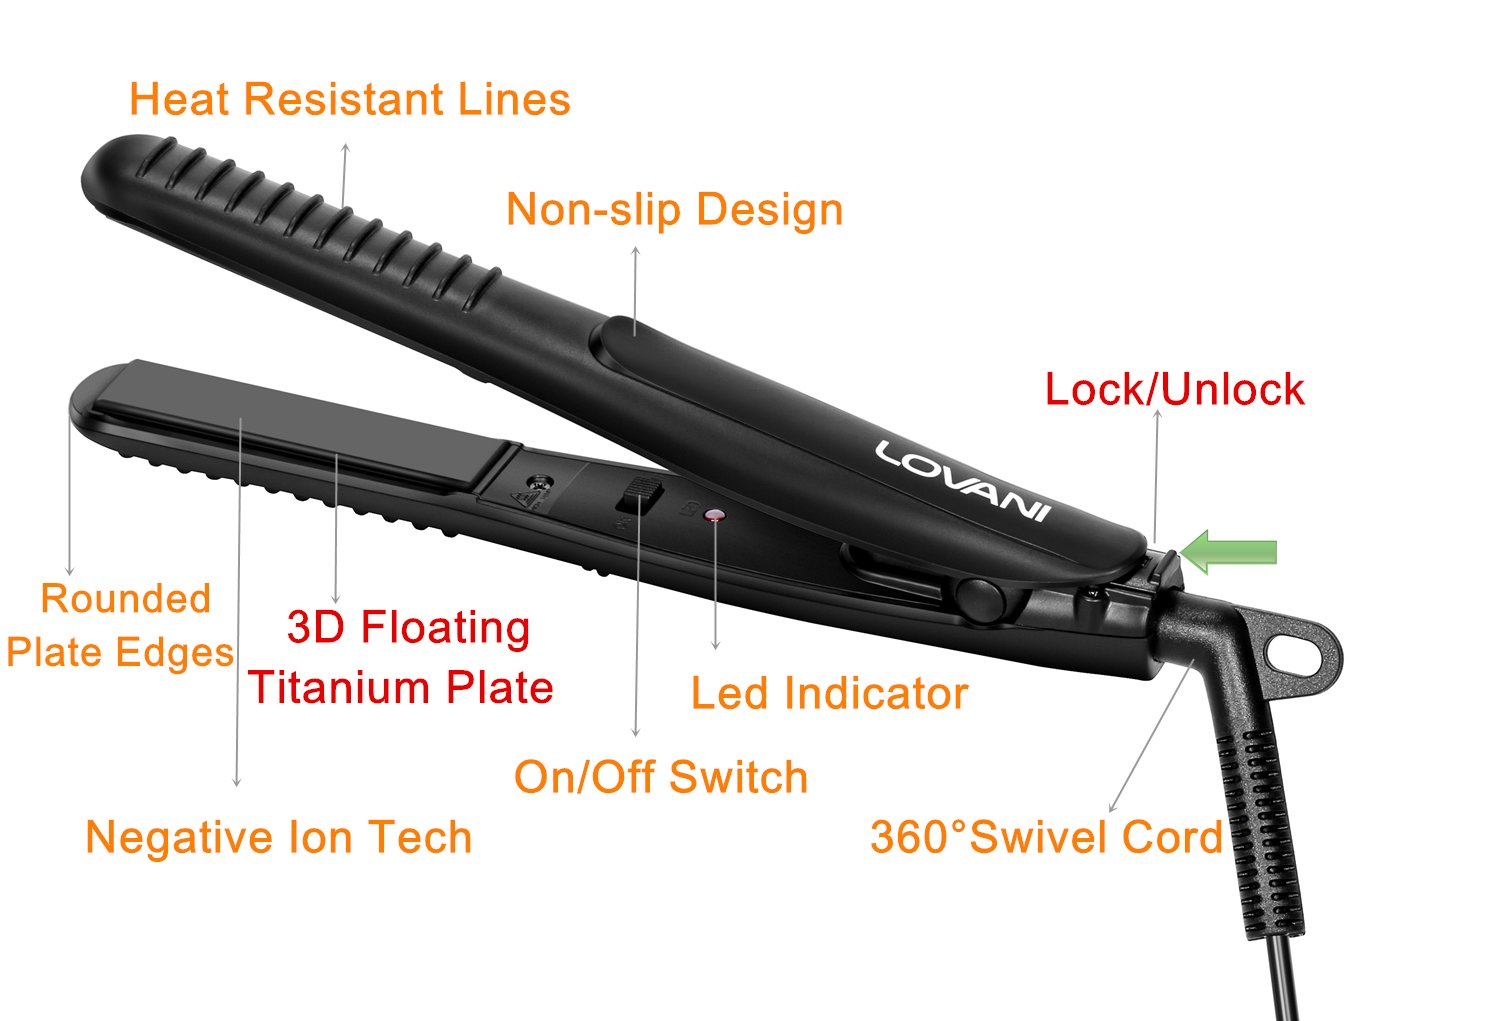 Watch 10 Best Dual Voltage Flat Irons For International Travel video